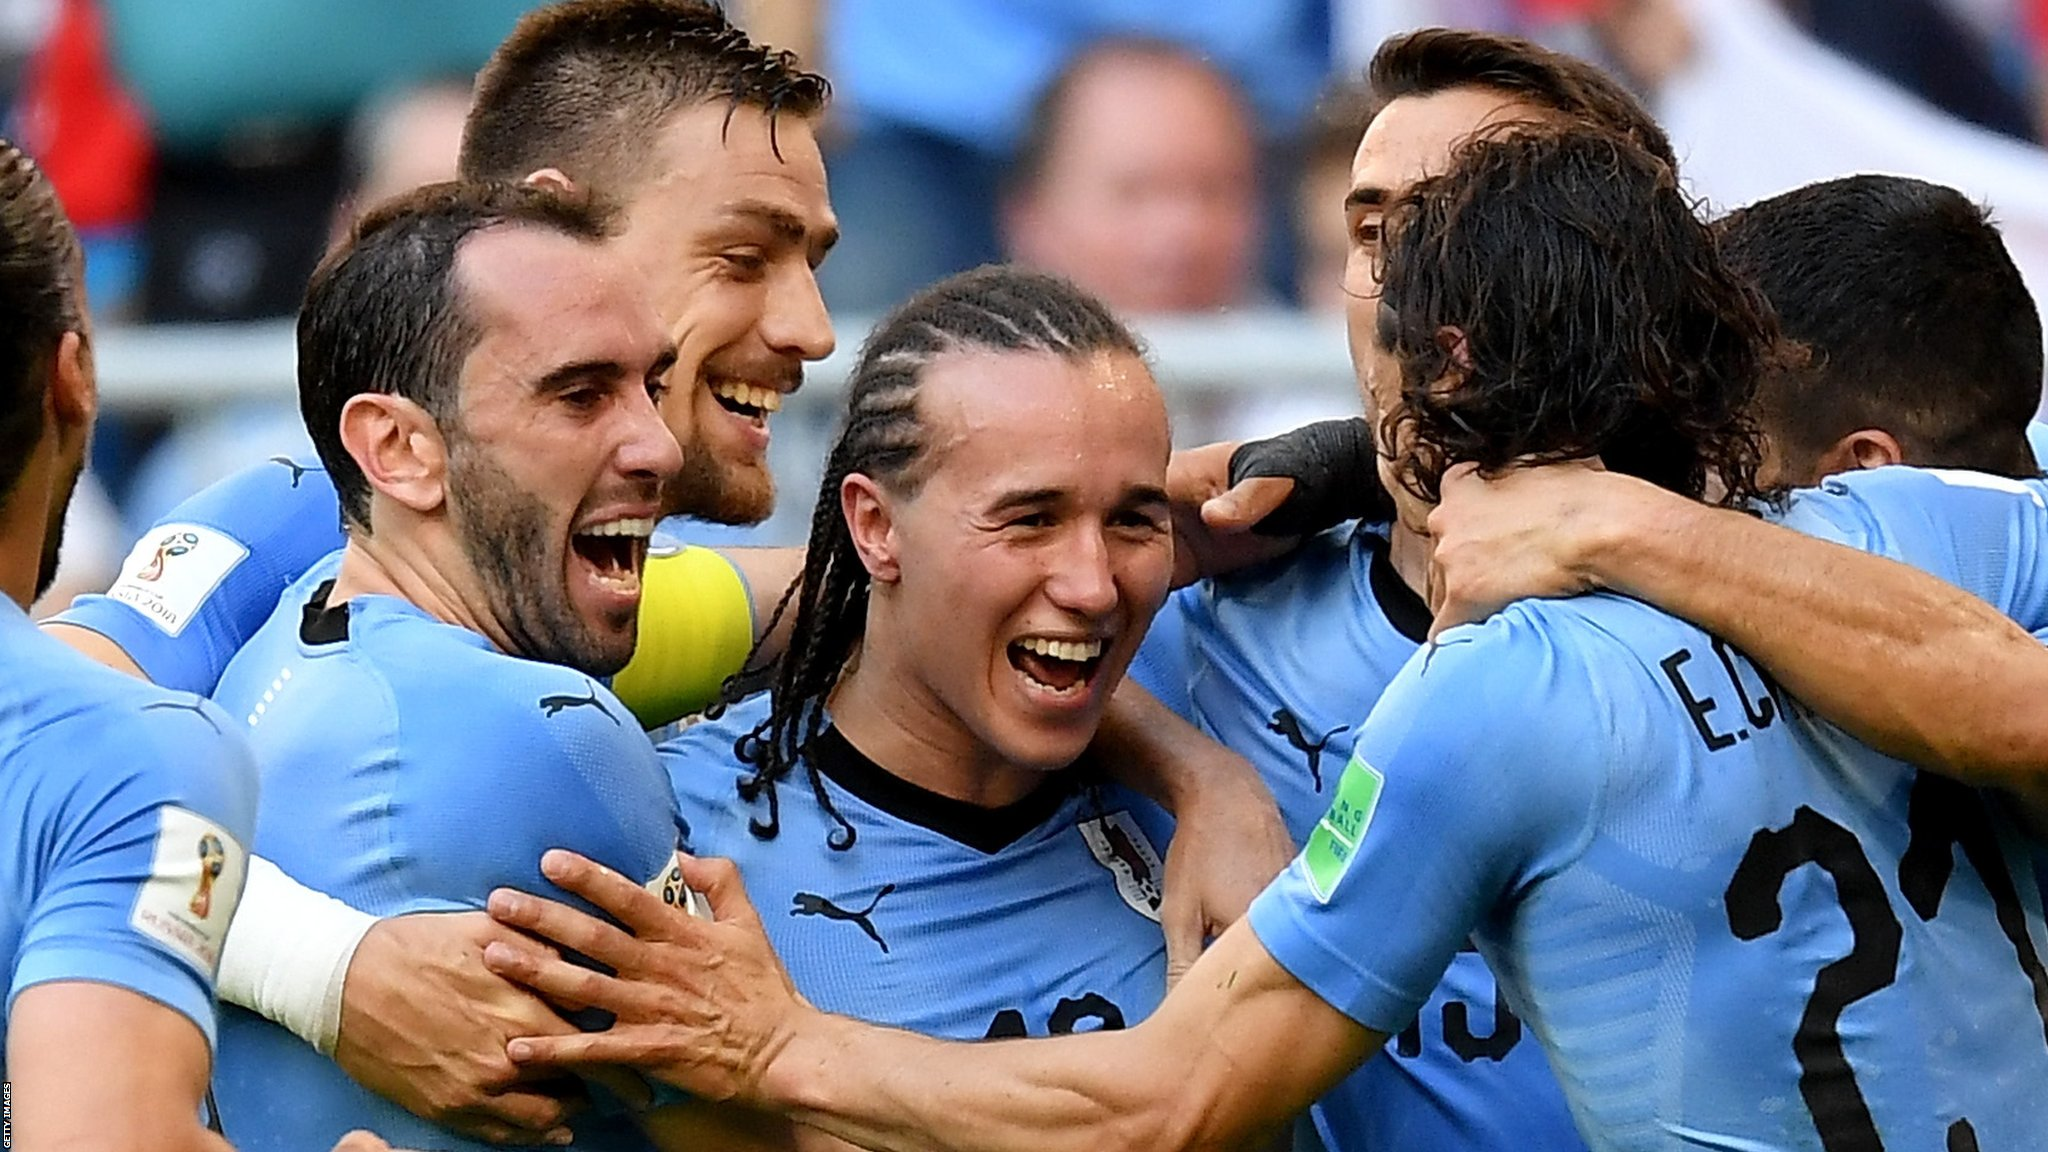 Suarez & Cavani score as Uruguay beat Russia to win Group A - highlights & report